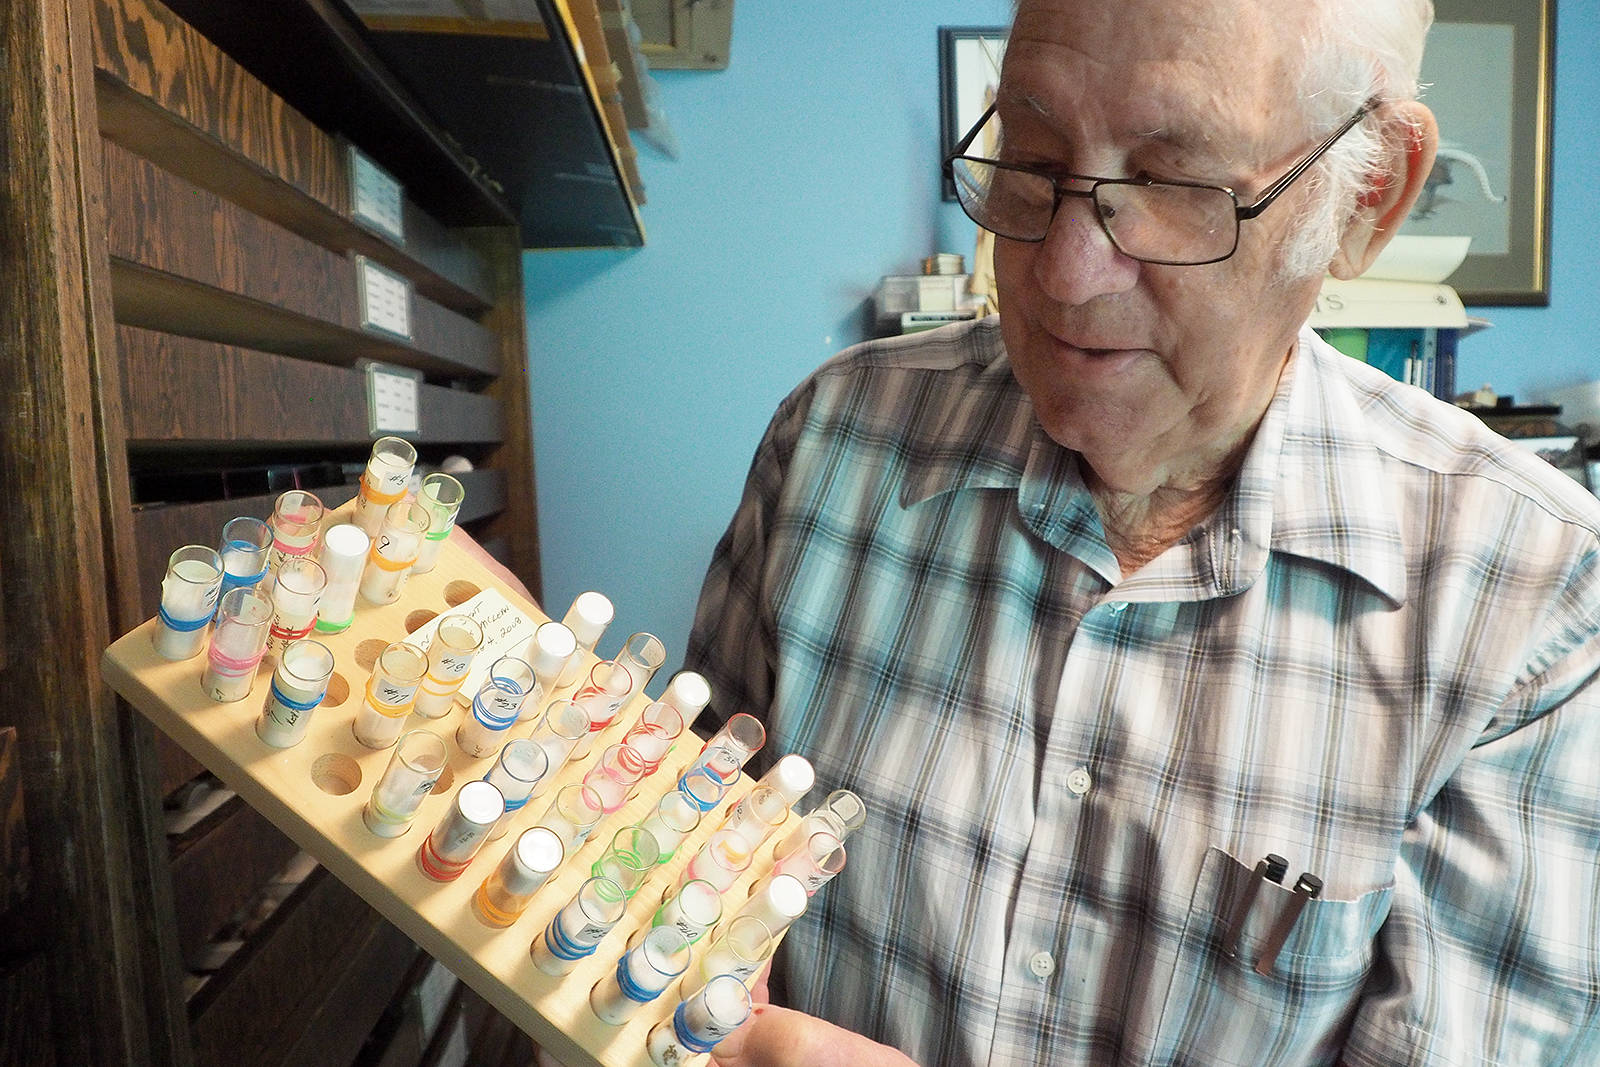 BIll Merilees, a retired B.C. Parks regional information officer, spent 50 years collecting mollusk specimens from the B.C. and Washington State coasts. Many of the tiny snails have yet to be identified by scientists. The classification work will likely be continued by students doing research projects at the University of British Columbia. (Chris Bush/News Bulletin)